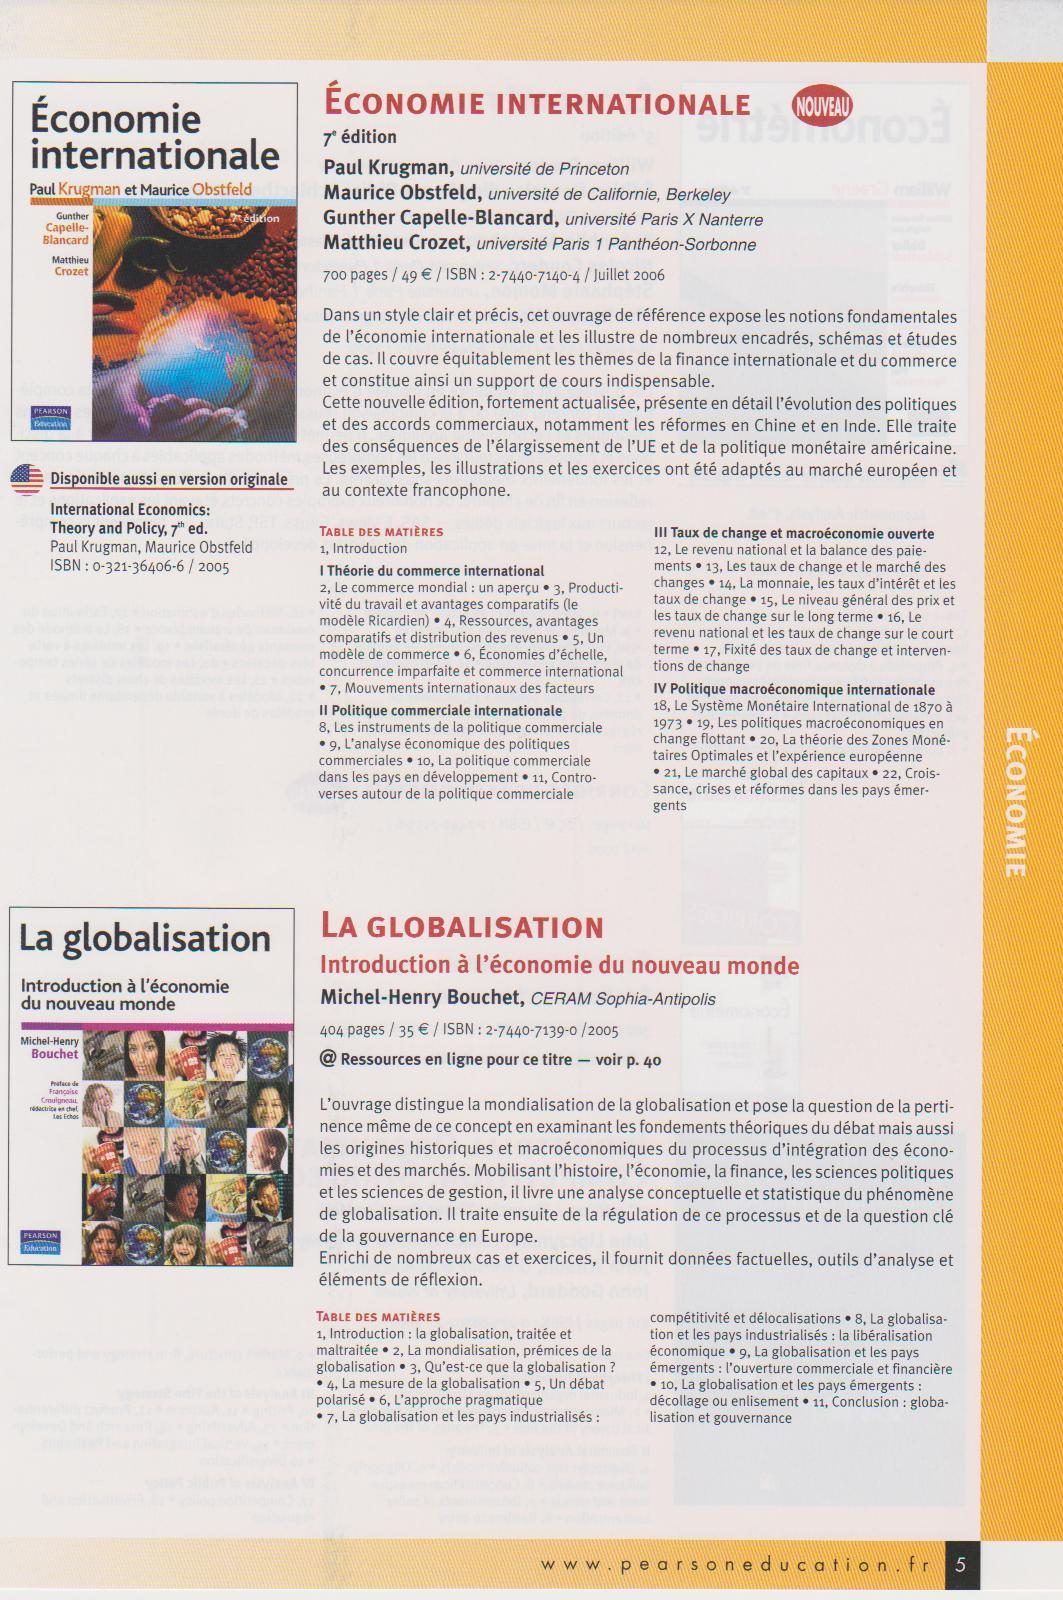 Cover page and Advertising of Pearson Book on Globalization, 2005